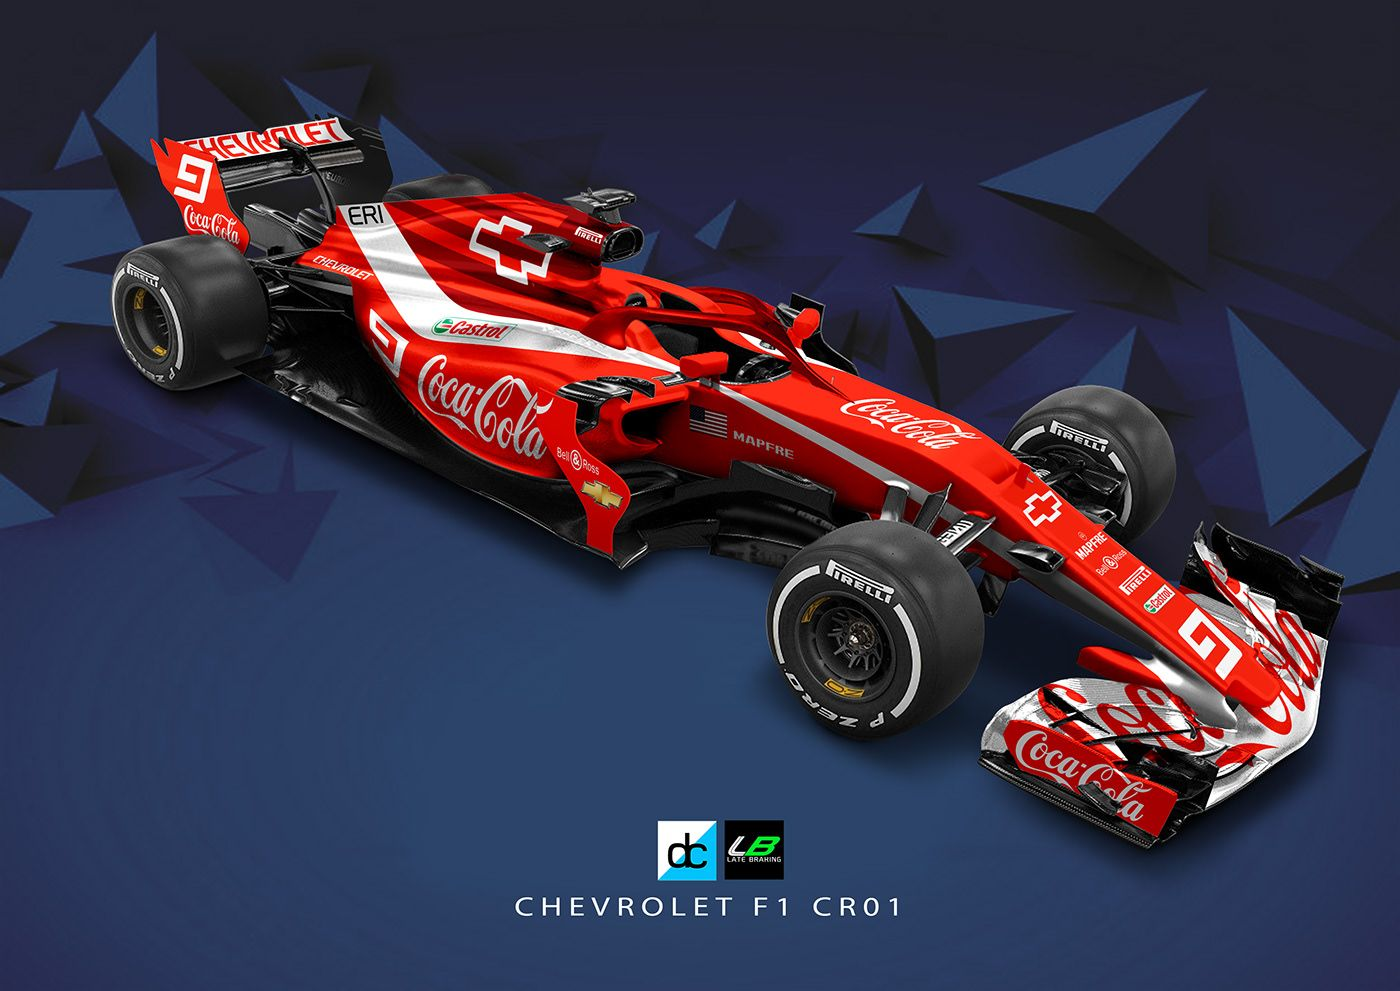 Chevrolet Racing F1 Concept Livery Late Braking On Behance F1